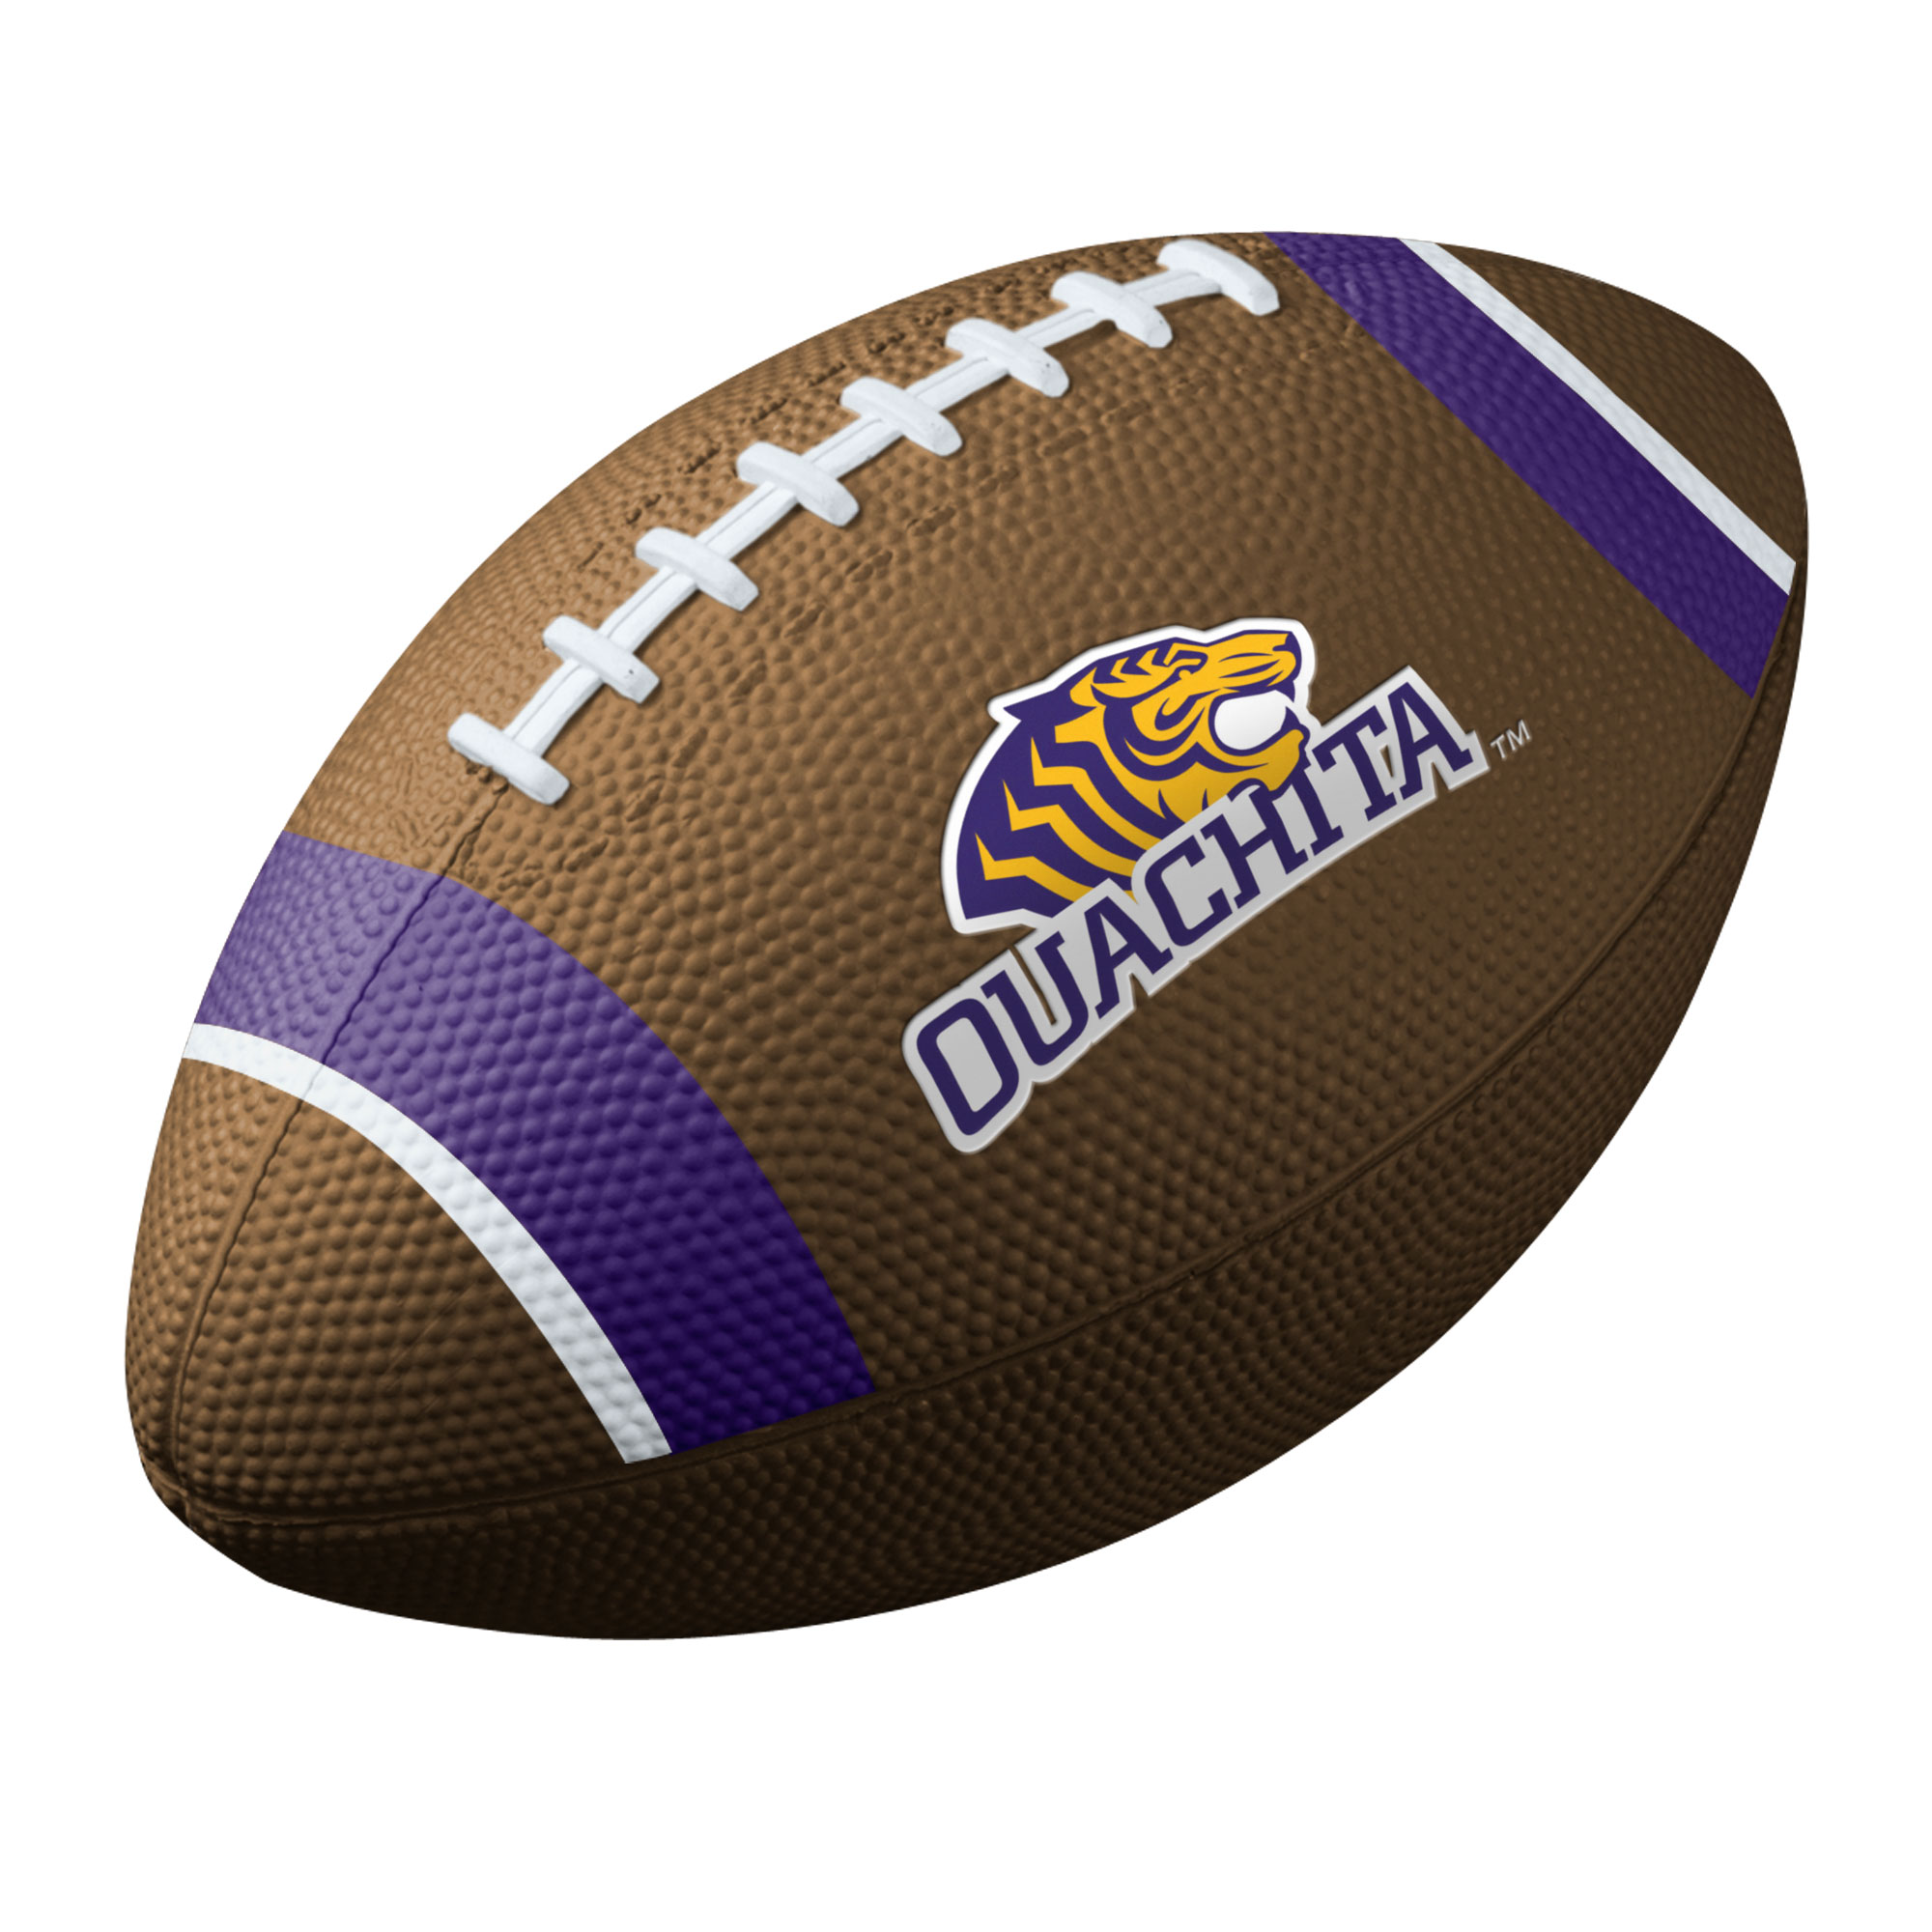 OUACHITA MINI FOOTBALL